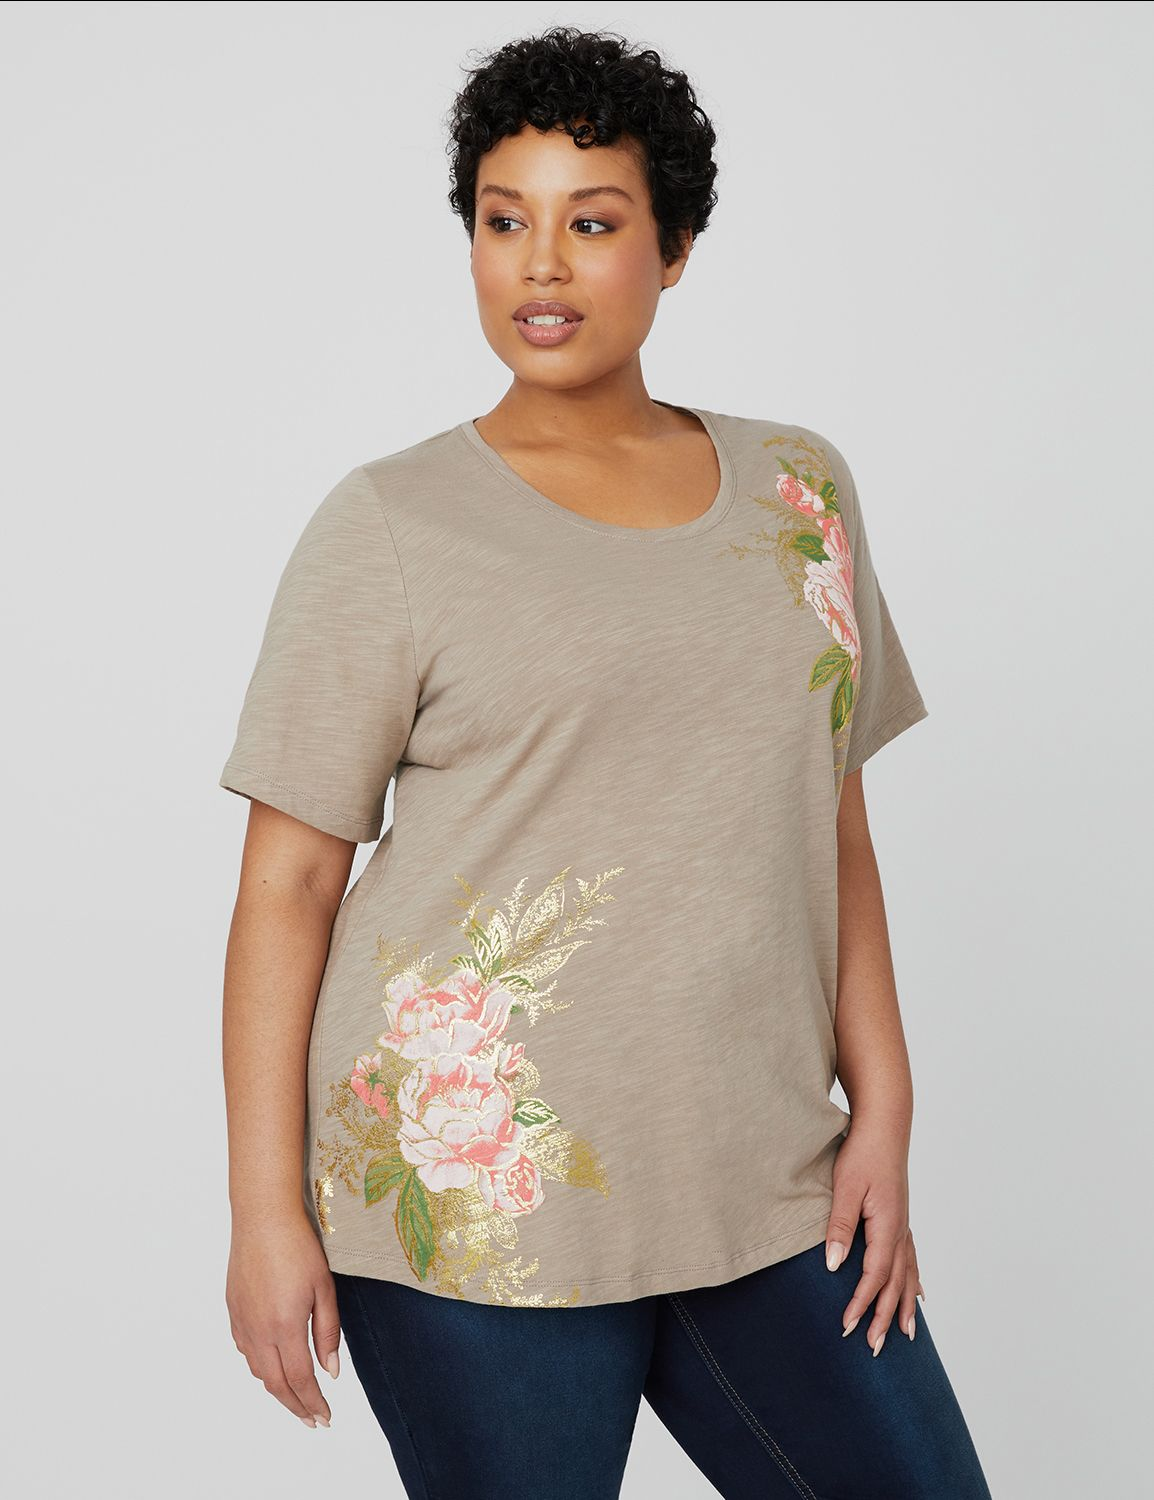 Tranquil Floral Tee 1088365 FLORAL SCREEN MP-300105245